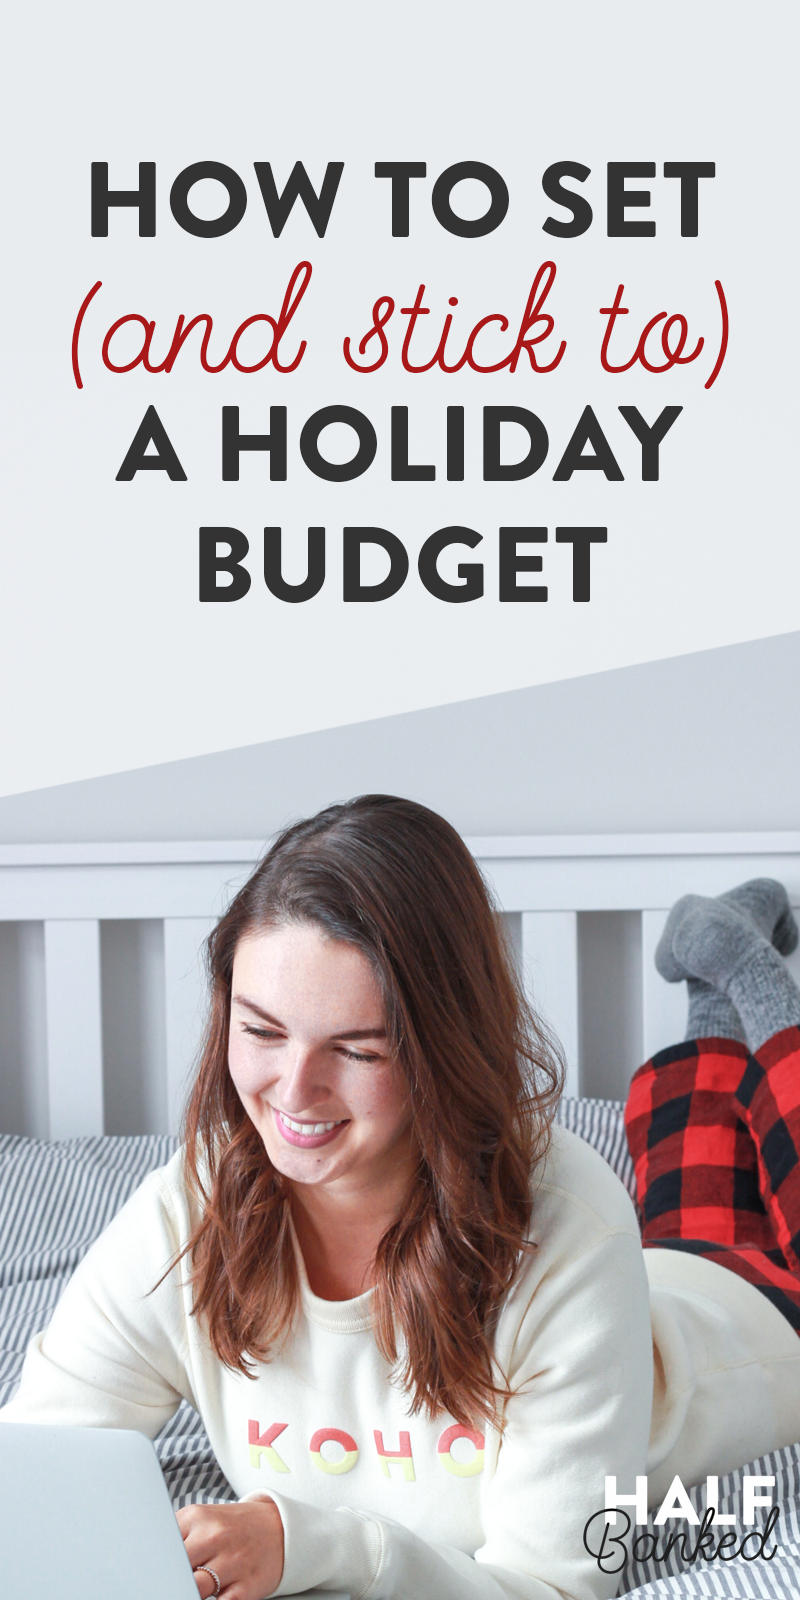 The three-step process I use to set and stick to my holiday budget. With a bit of planning, it's totally possible! #Holiday #Budgeting #BudgetPlanning #GiftBudget #ChristmasBudget